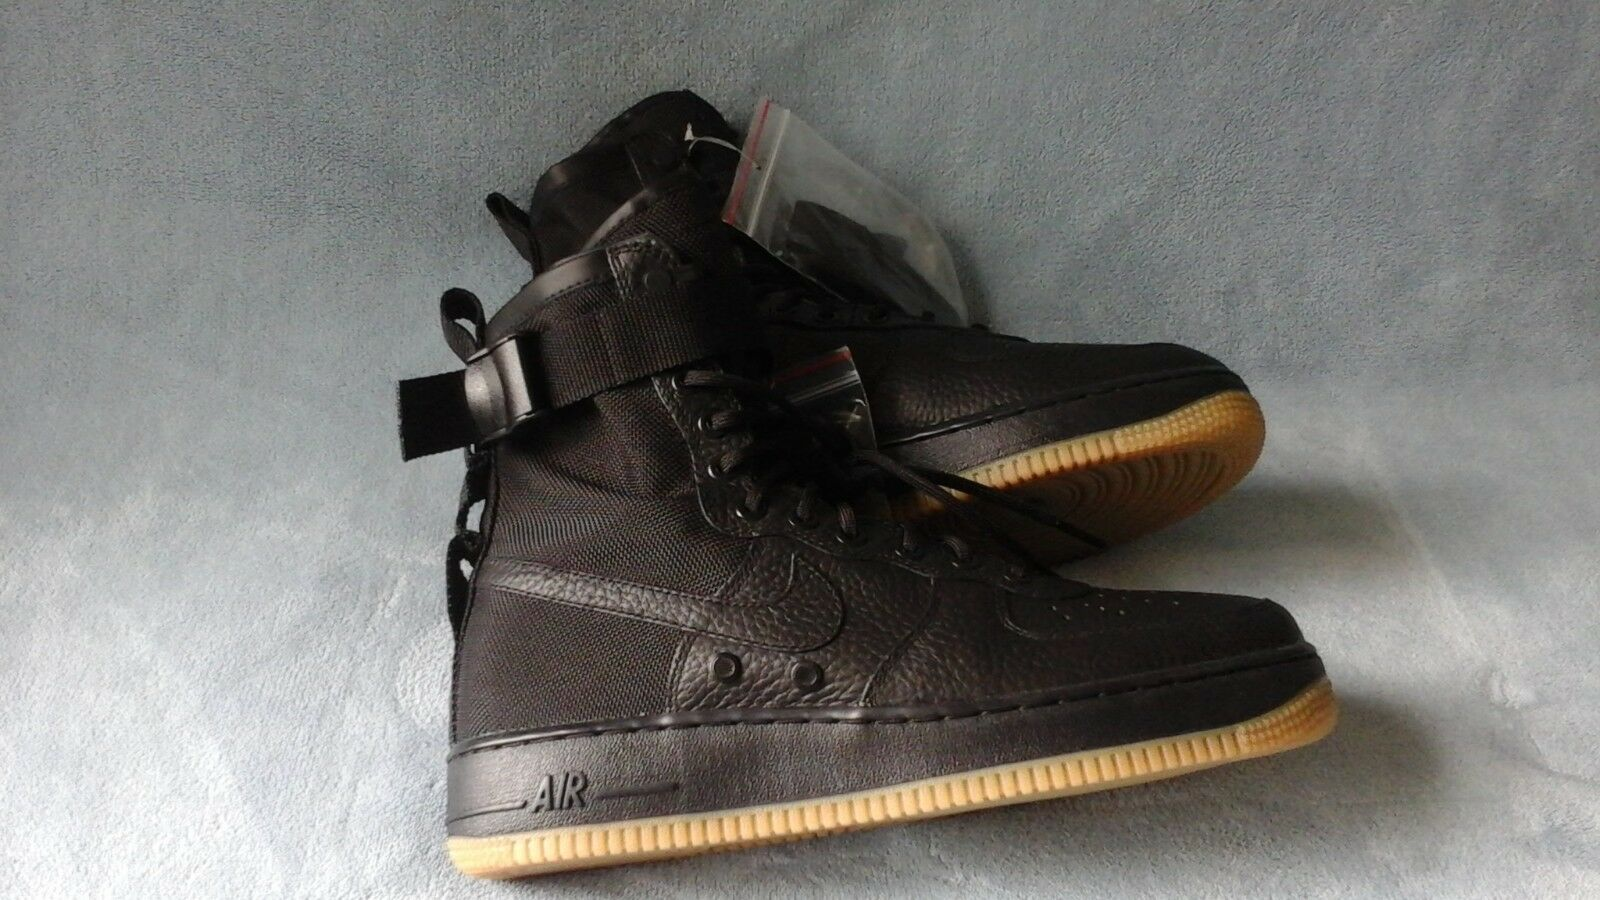 Nike SF AF1 Special Field Triple Black Gum 864024-001 Size 8.5